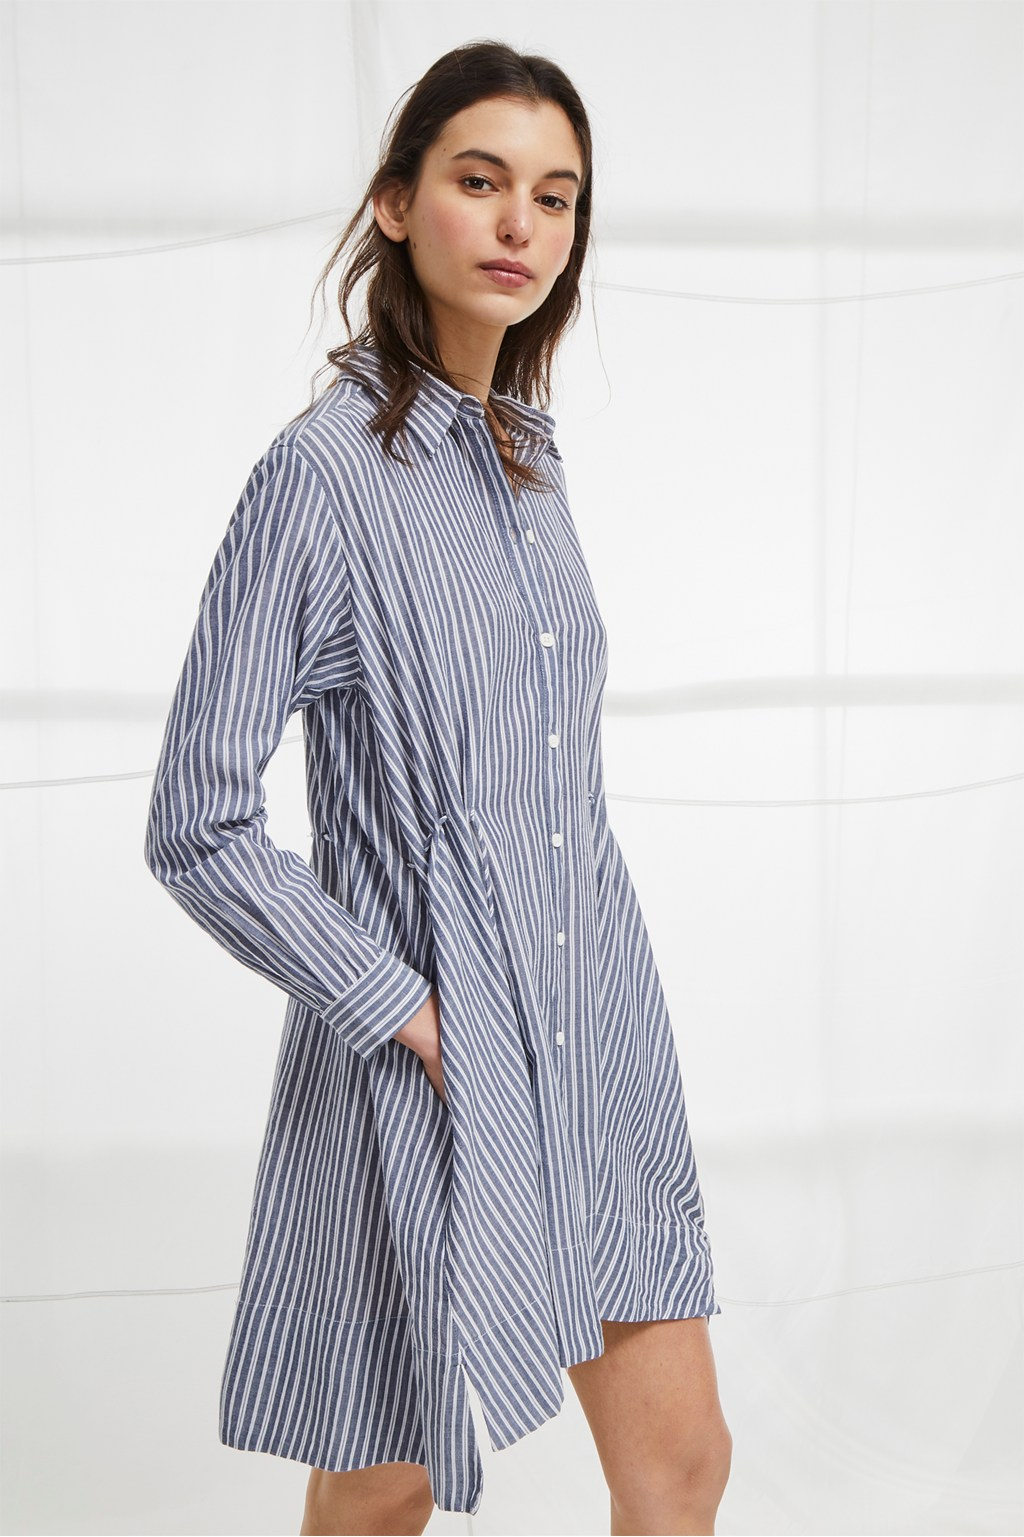 5930c61fae loading images... loading images... loading images... Tatus Stripe  Drawstring Shirt Dress